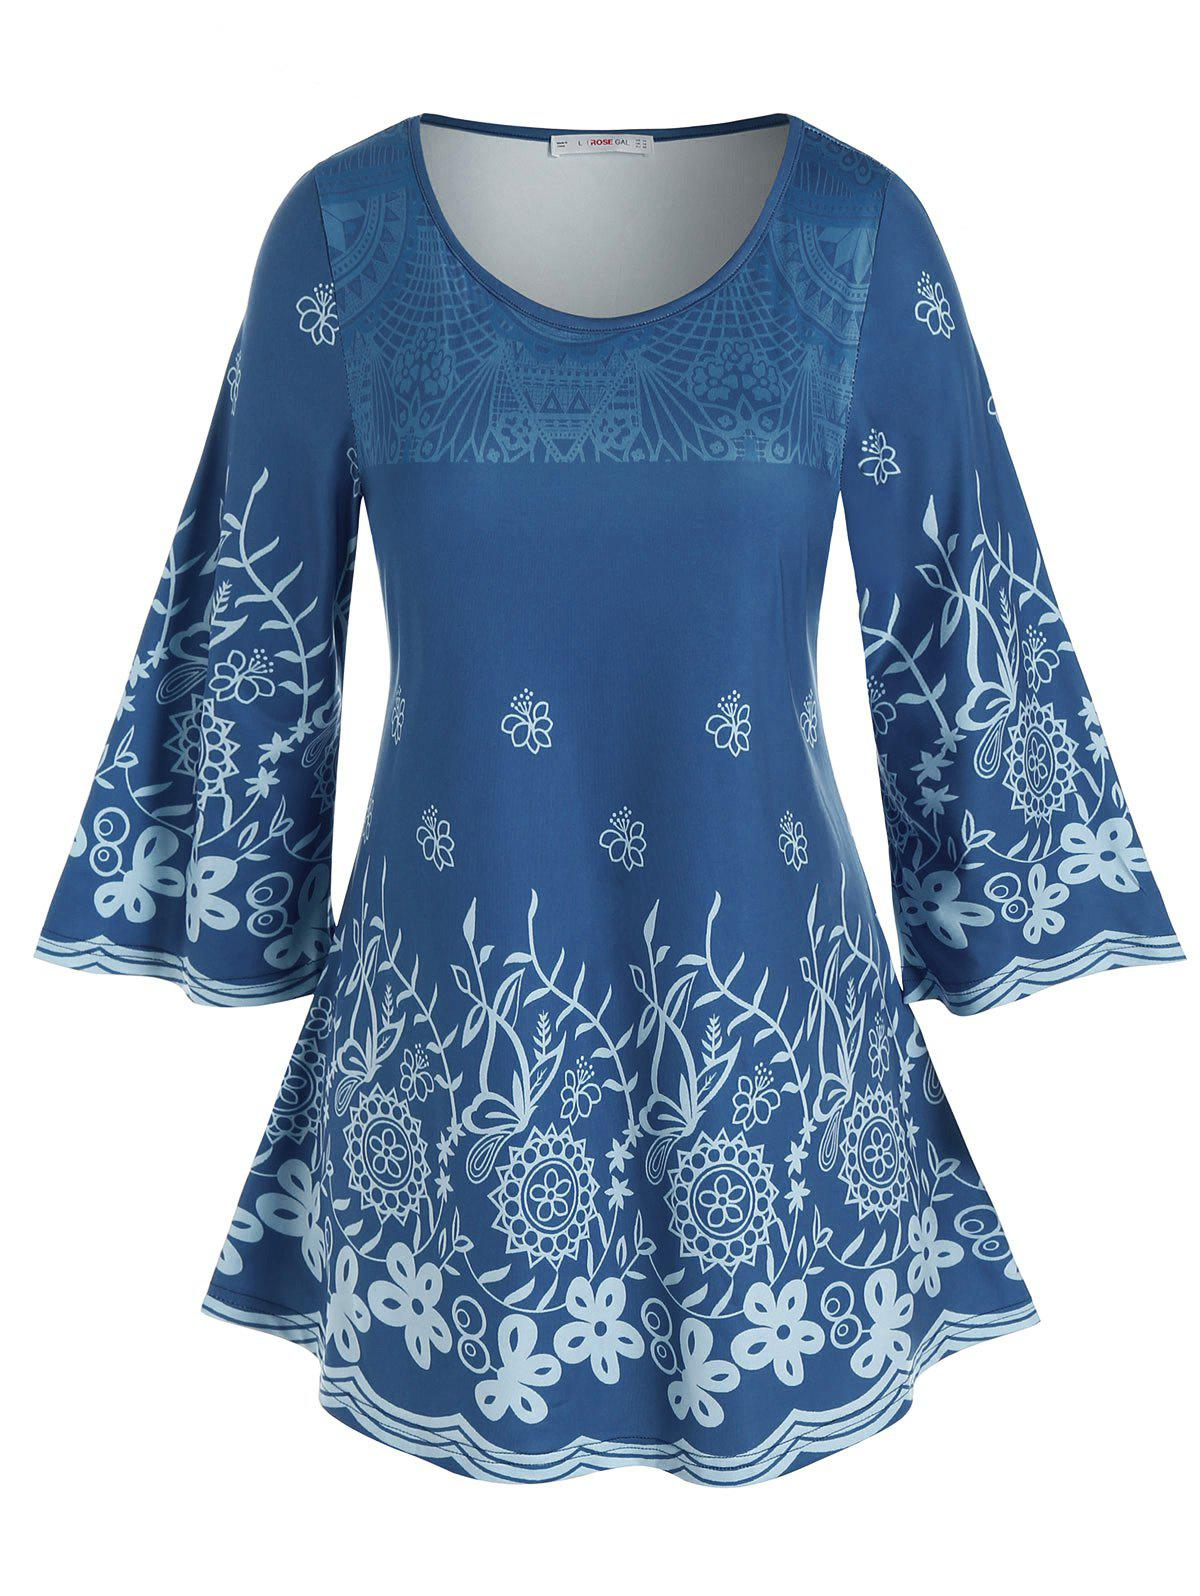 Plus Size Flower Patterned Casual Tunic Tee - BLUE 3X